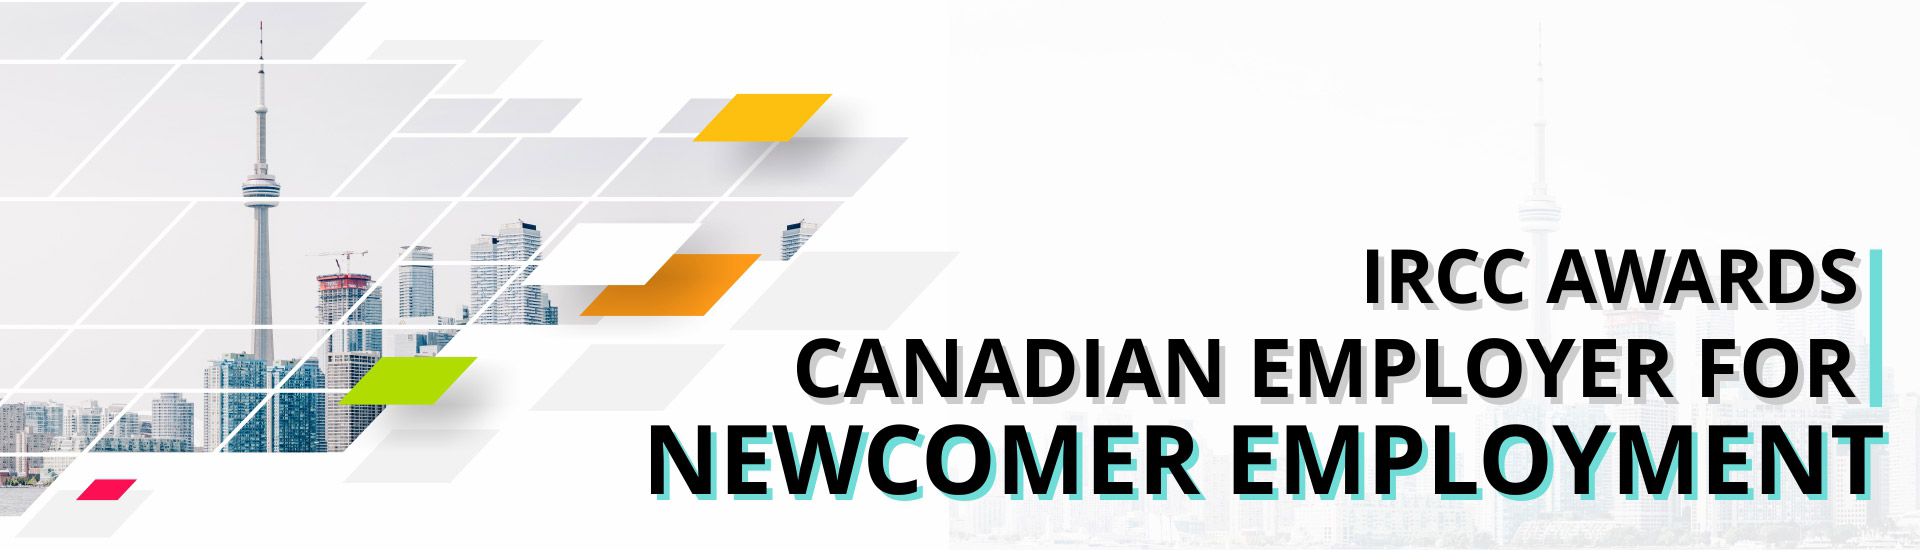 IRCC Awards Canadian Employer for Newcomer Employment